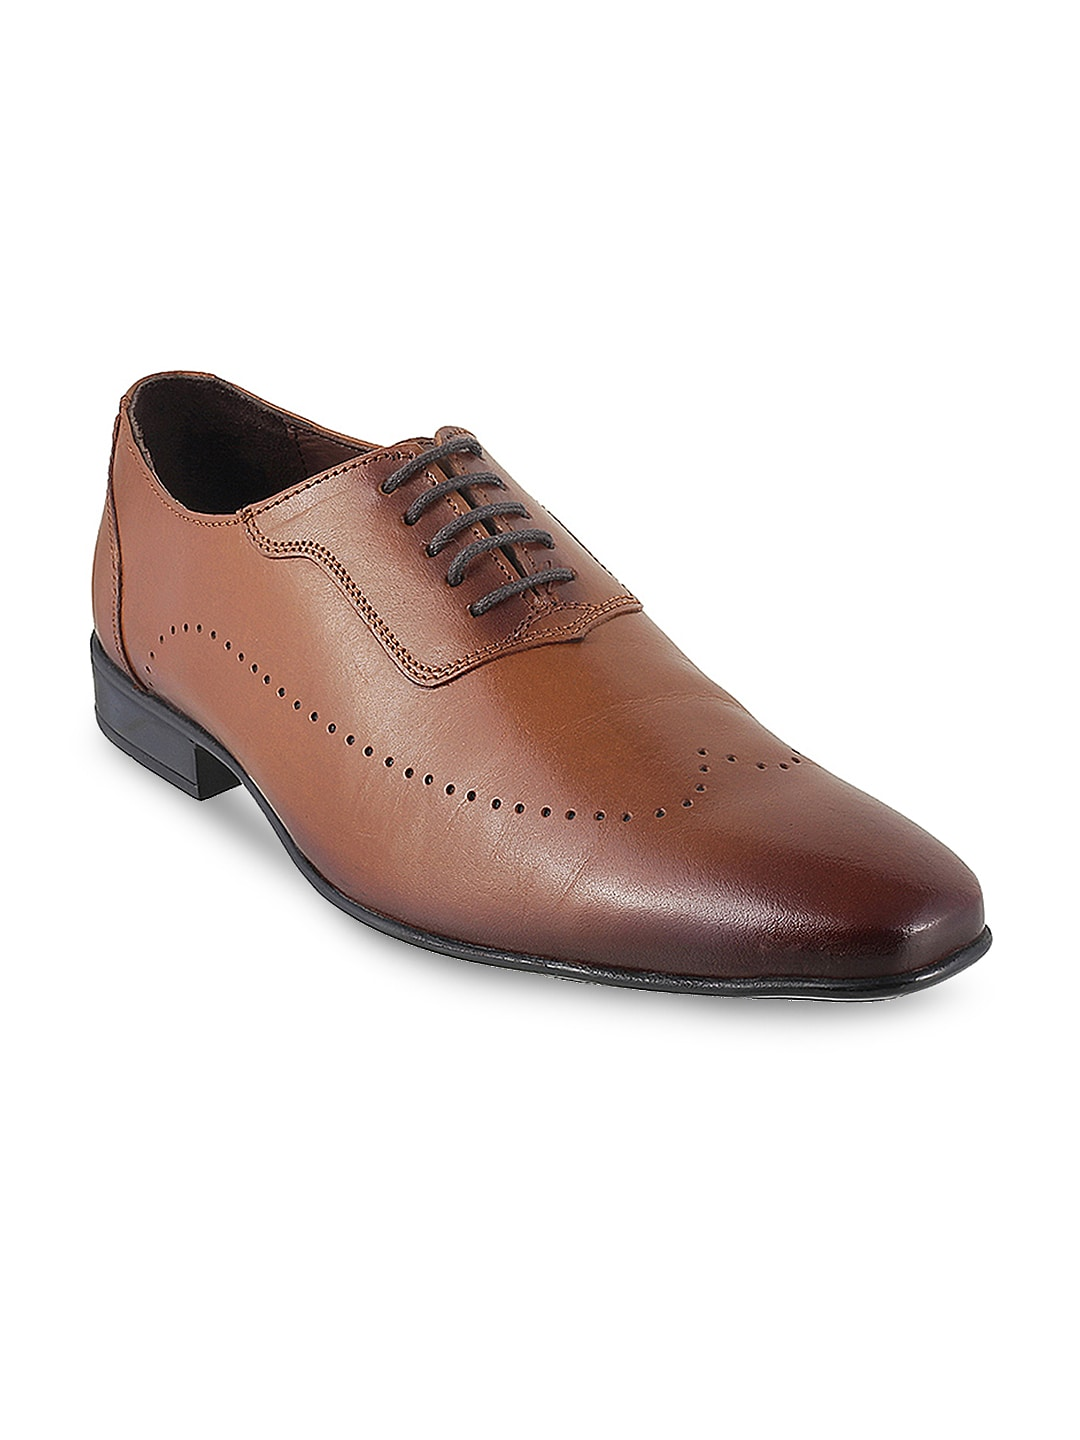 Metro Men Tan Solid Leather Derbys image